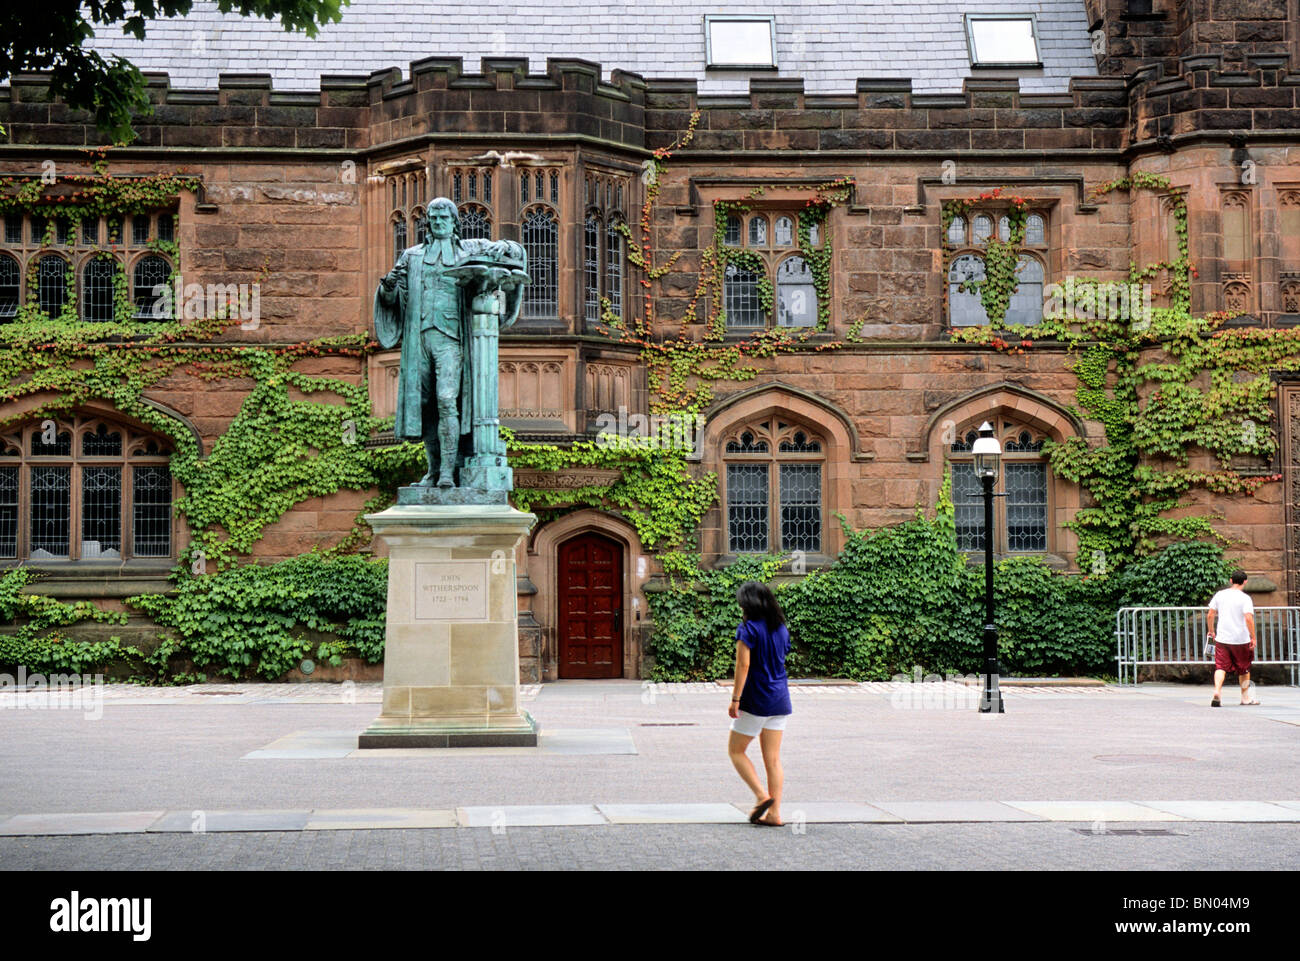 USA Princeton University Students on Campus in Front of East Pyne Hall and Statue of John Witherspoon Princeton - Stock Image